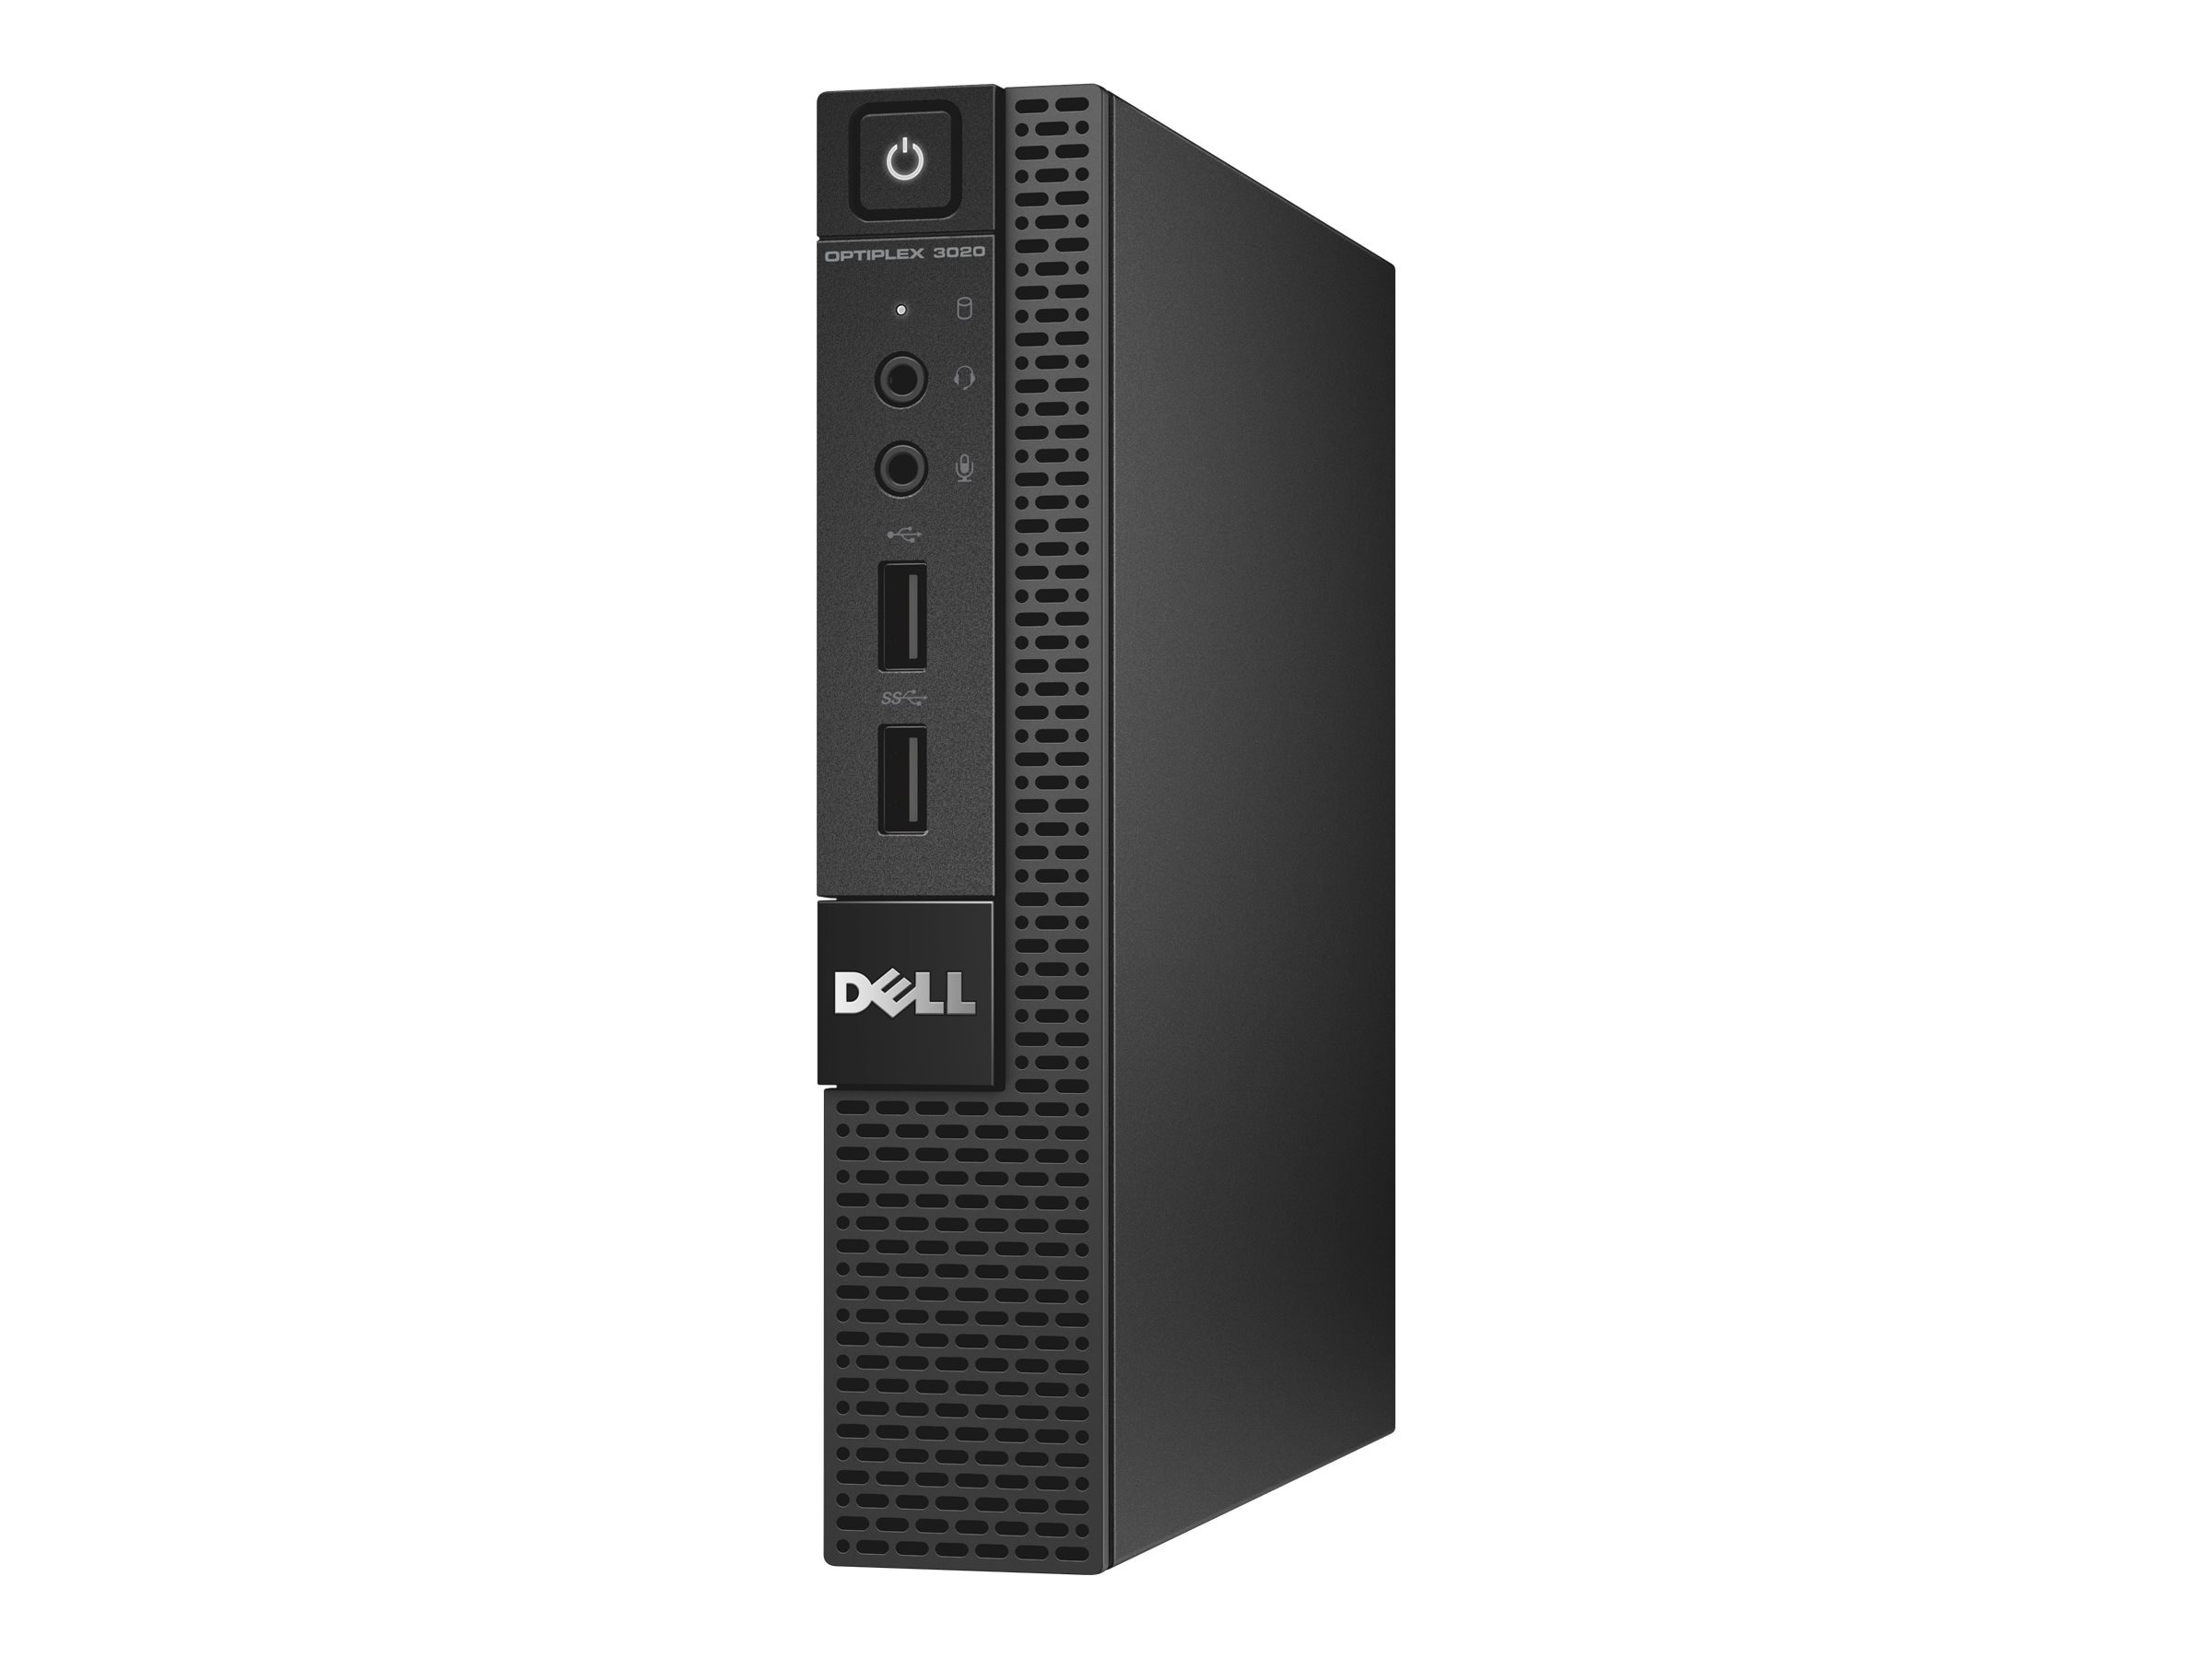 Dell Optiplex 3020 3.1GHz Core i3 4GB RAM 500GB hard drive, MY6TM, 18985119, Desktops